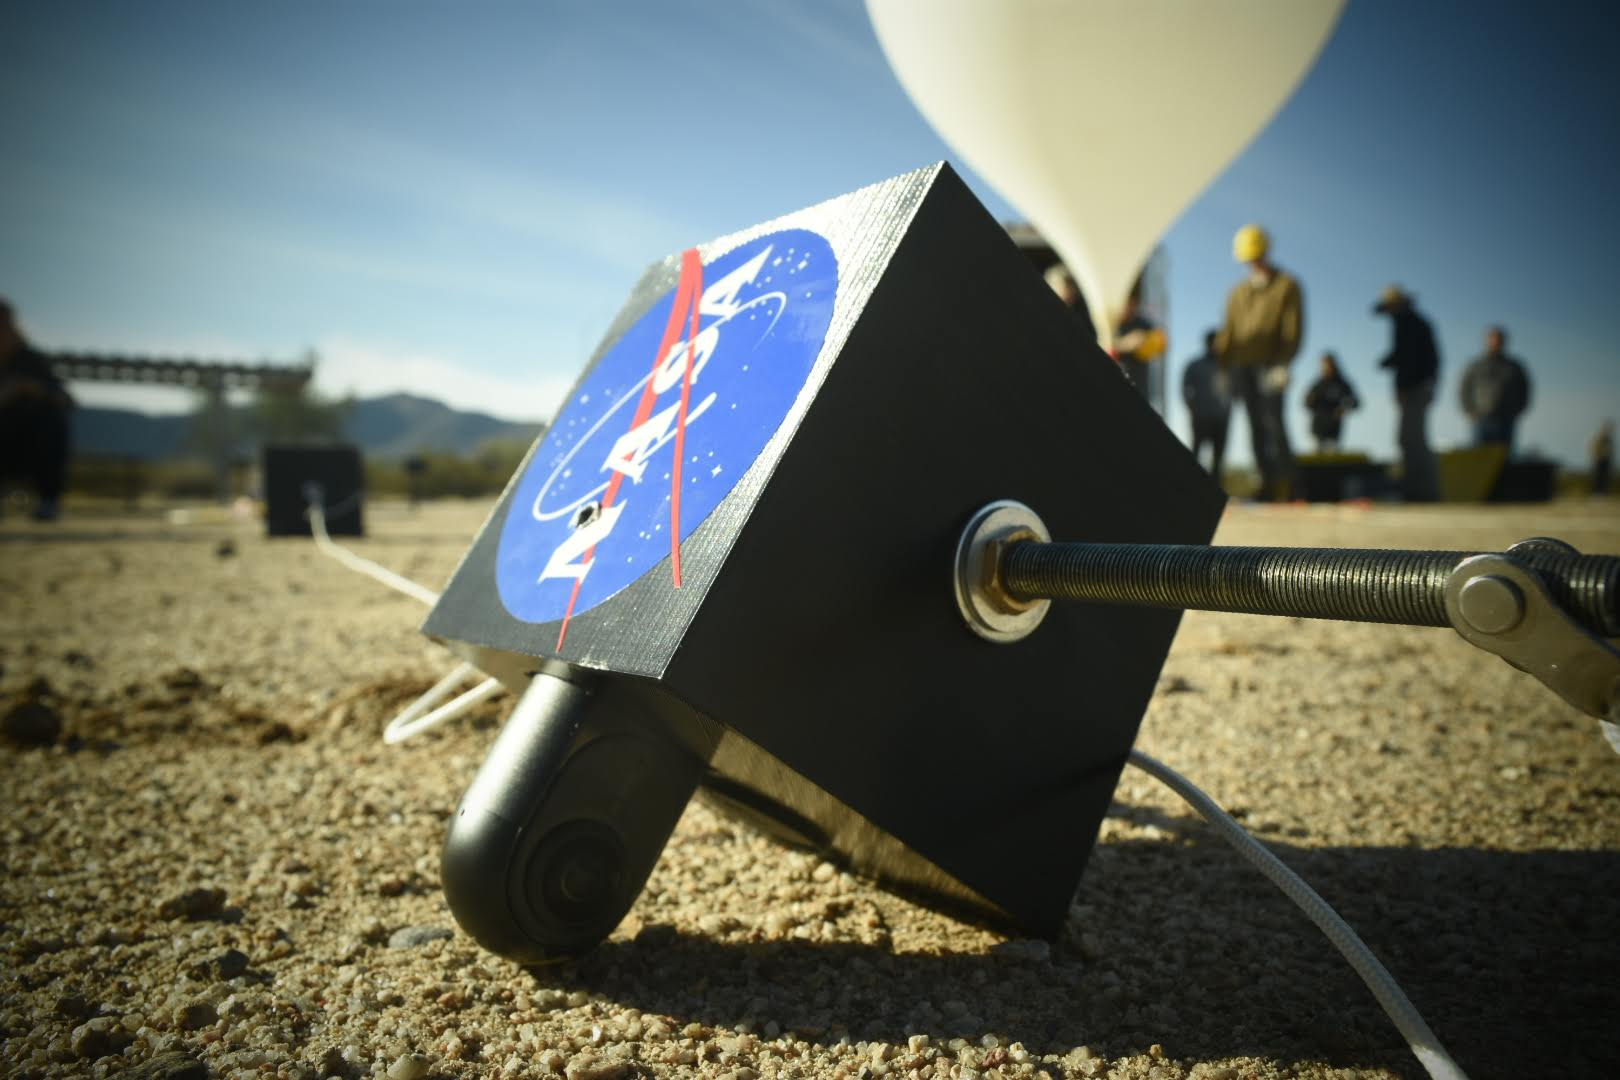 UA SEDS payload with NASA sticker. Background is helium balloon being inflated.